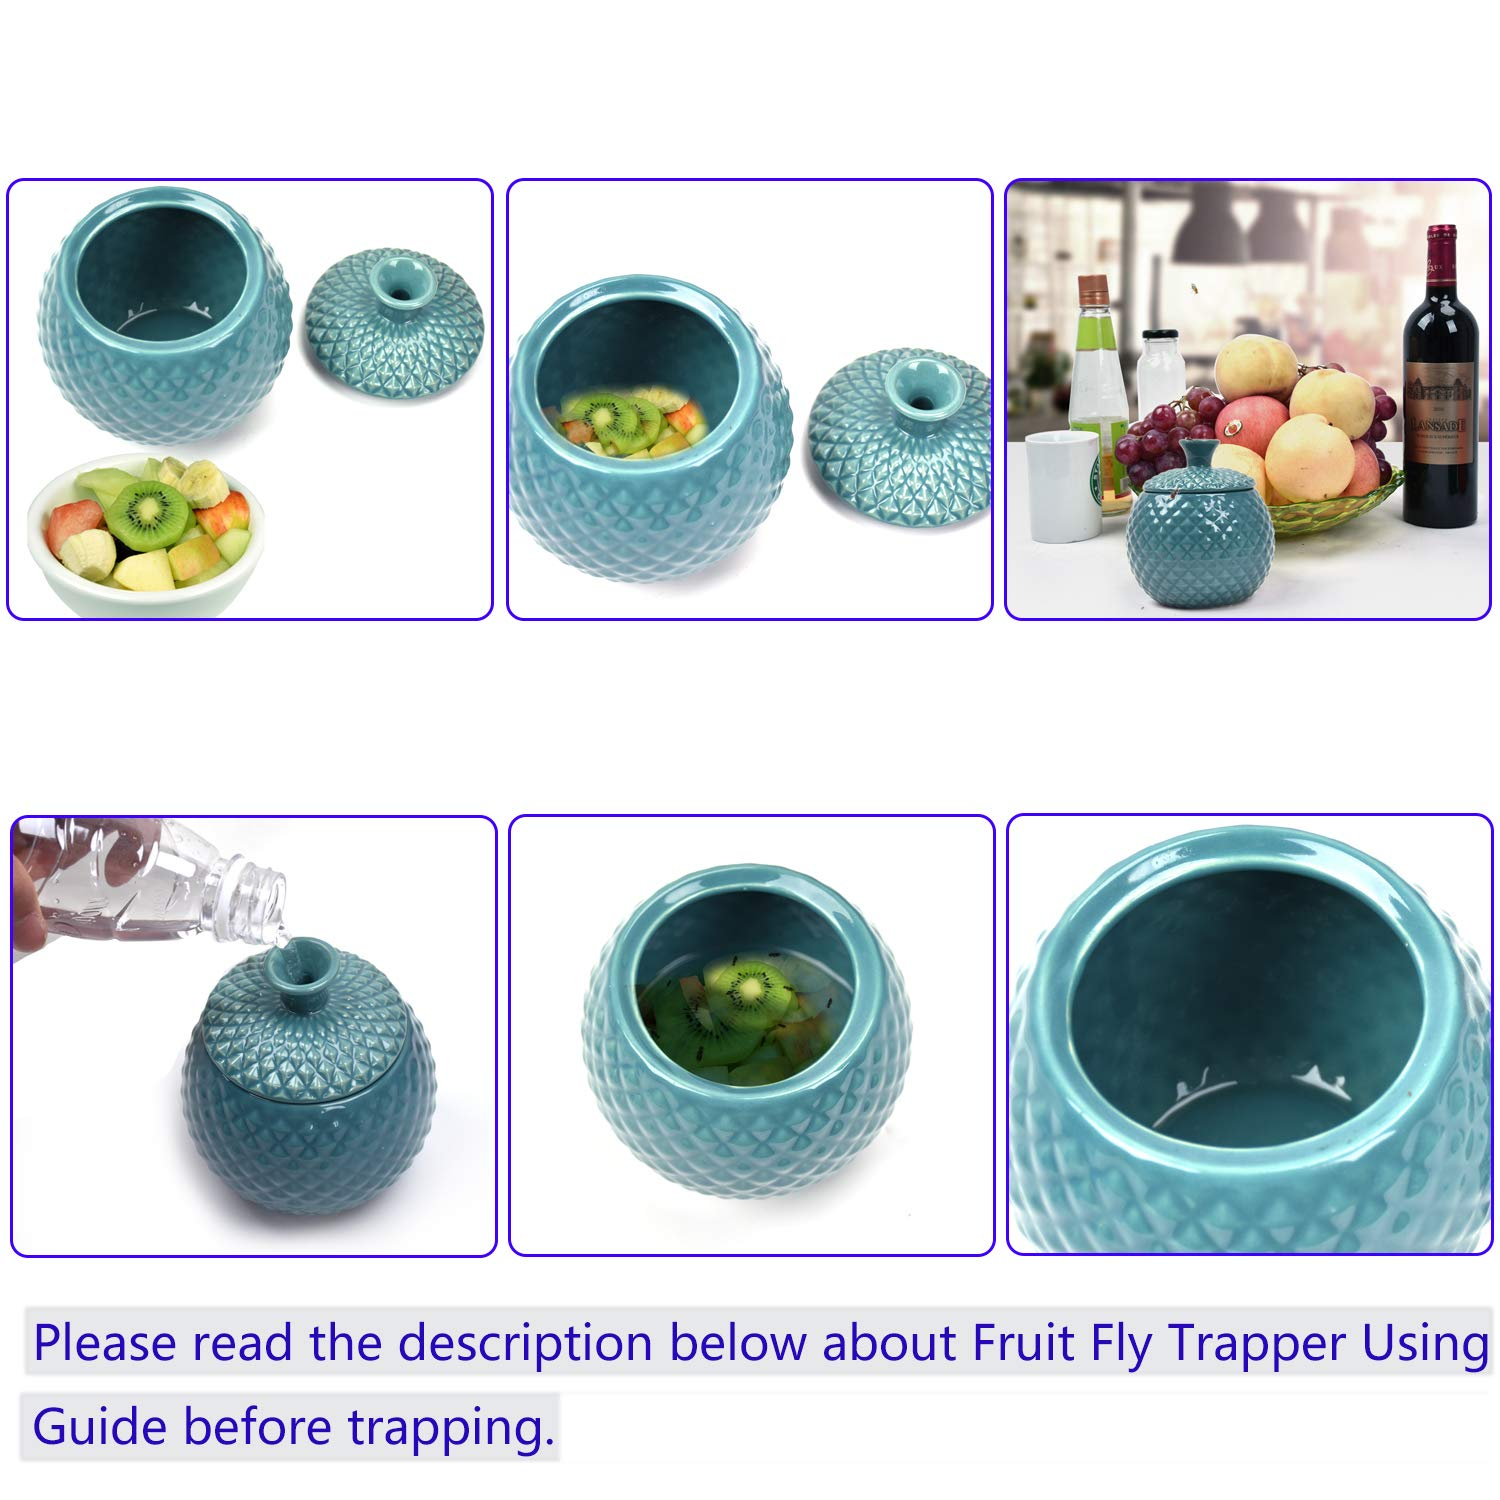 ATHORBOT Fruit Fly Catcher Trapper for Home Kitchens Natural Pest Control Chemical Free Nontoxic Decorative Kid and Pet Friendly (Blue)